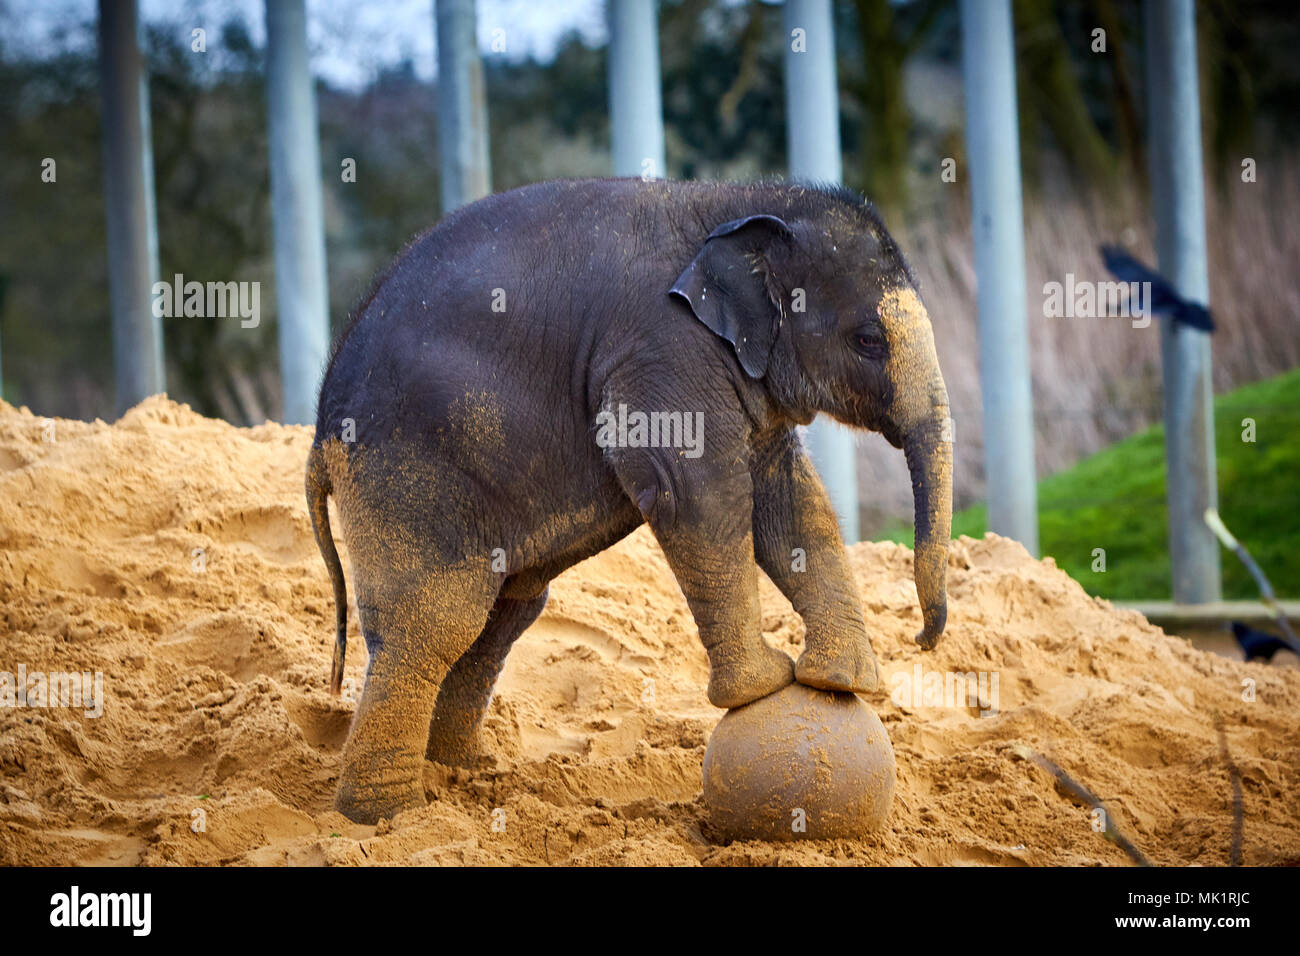 A baby Asian elephant during the annual animal stocktake at ZSL Whipsnade Zoo - Stock Image